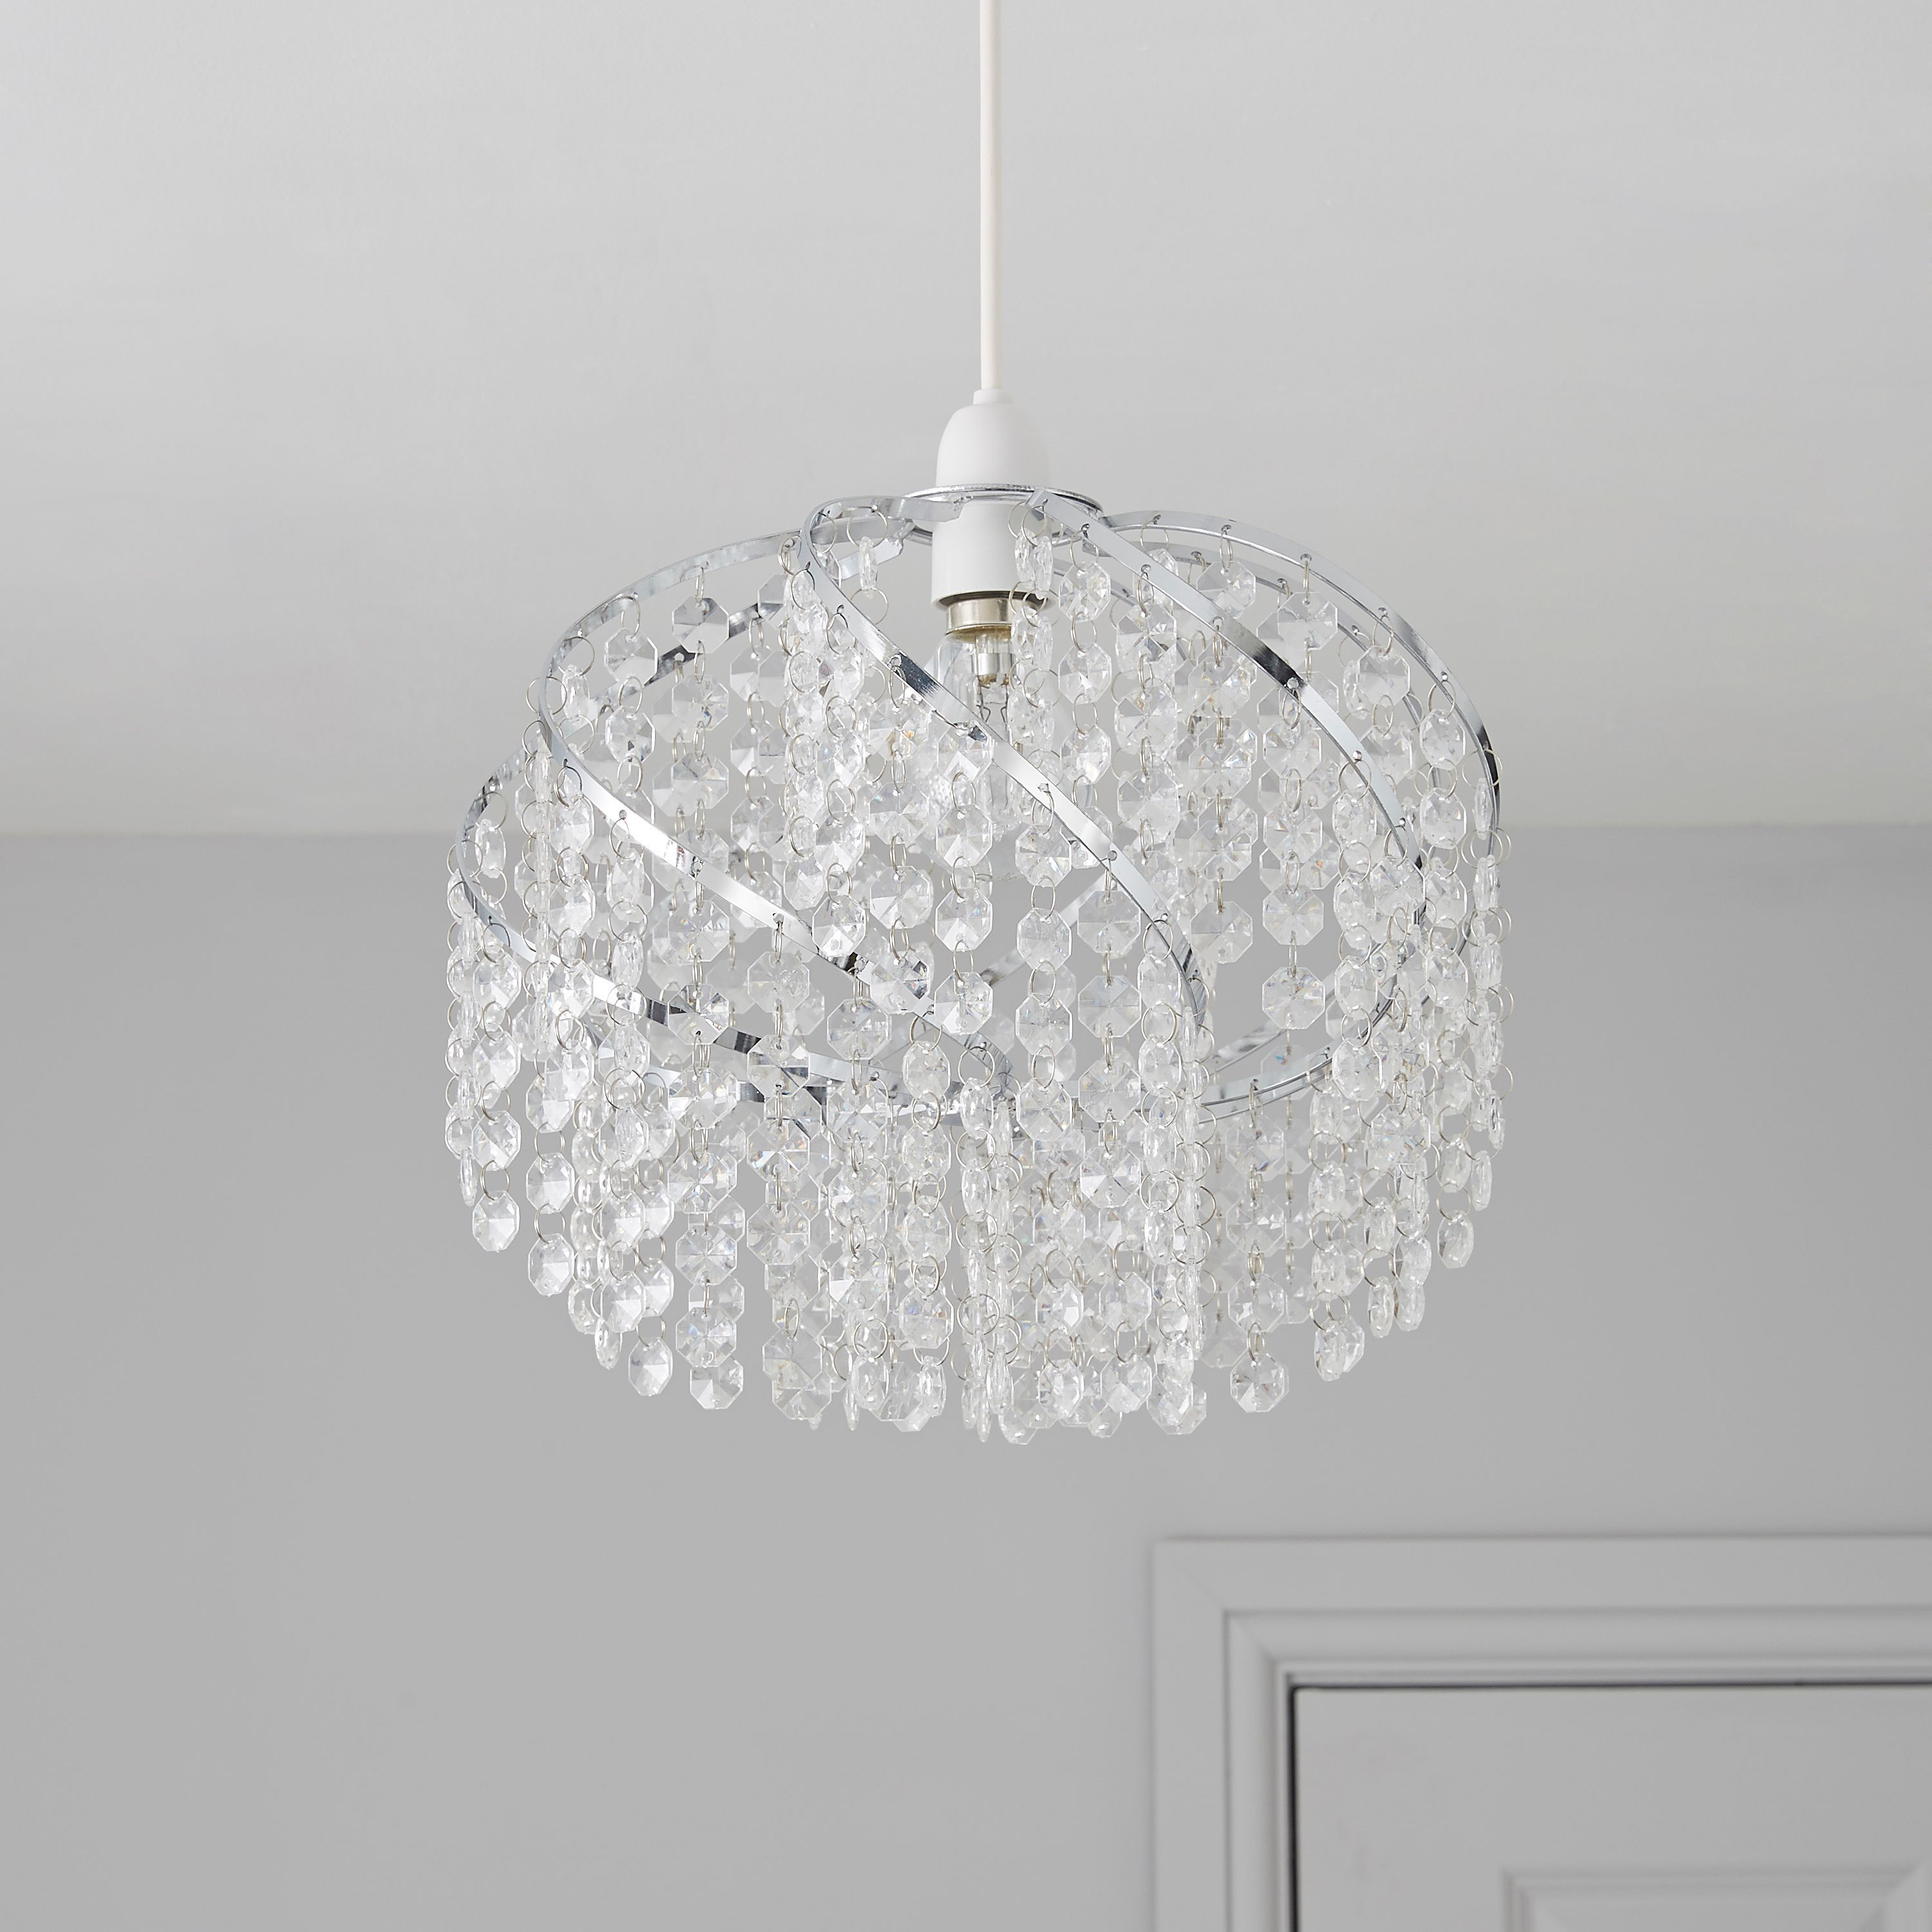 ball shades appealing with a much design like and small for elegant crystal glass shade chandeliers lamp captivating curtain canvas round